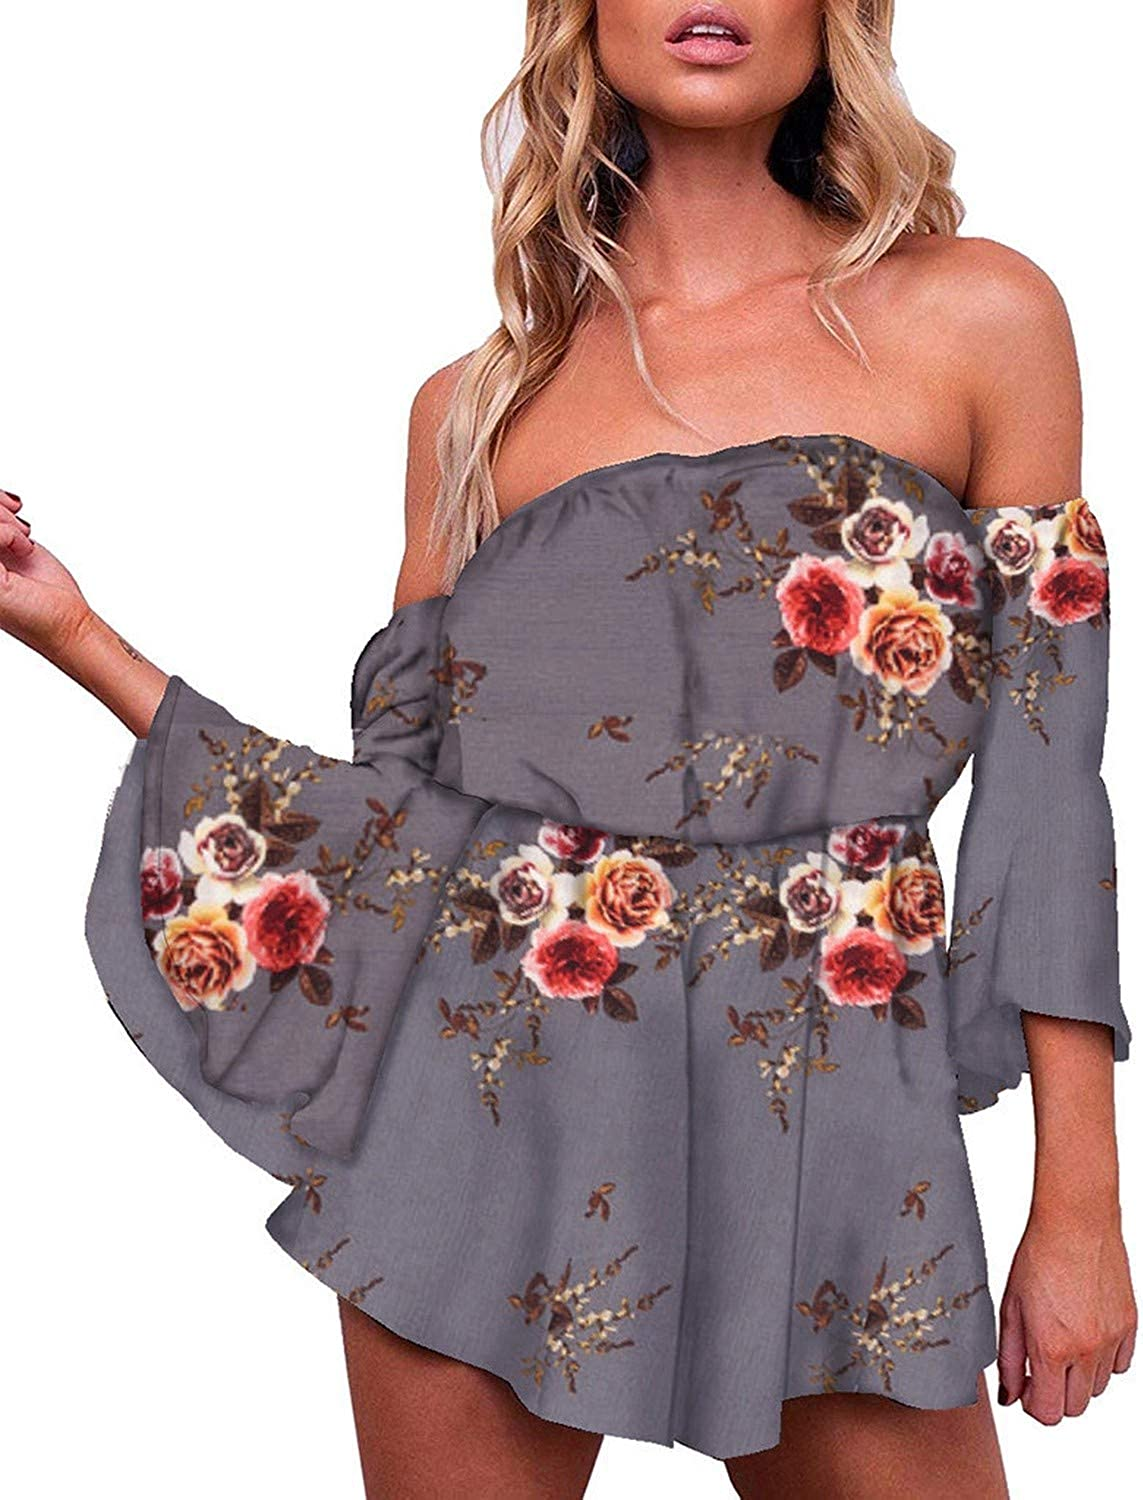 The small cat Fashion Off Shoulder Bodysuit Women Floral Print Jumpsuits Flare Sleeve Short Romper